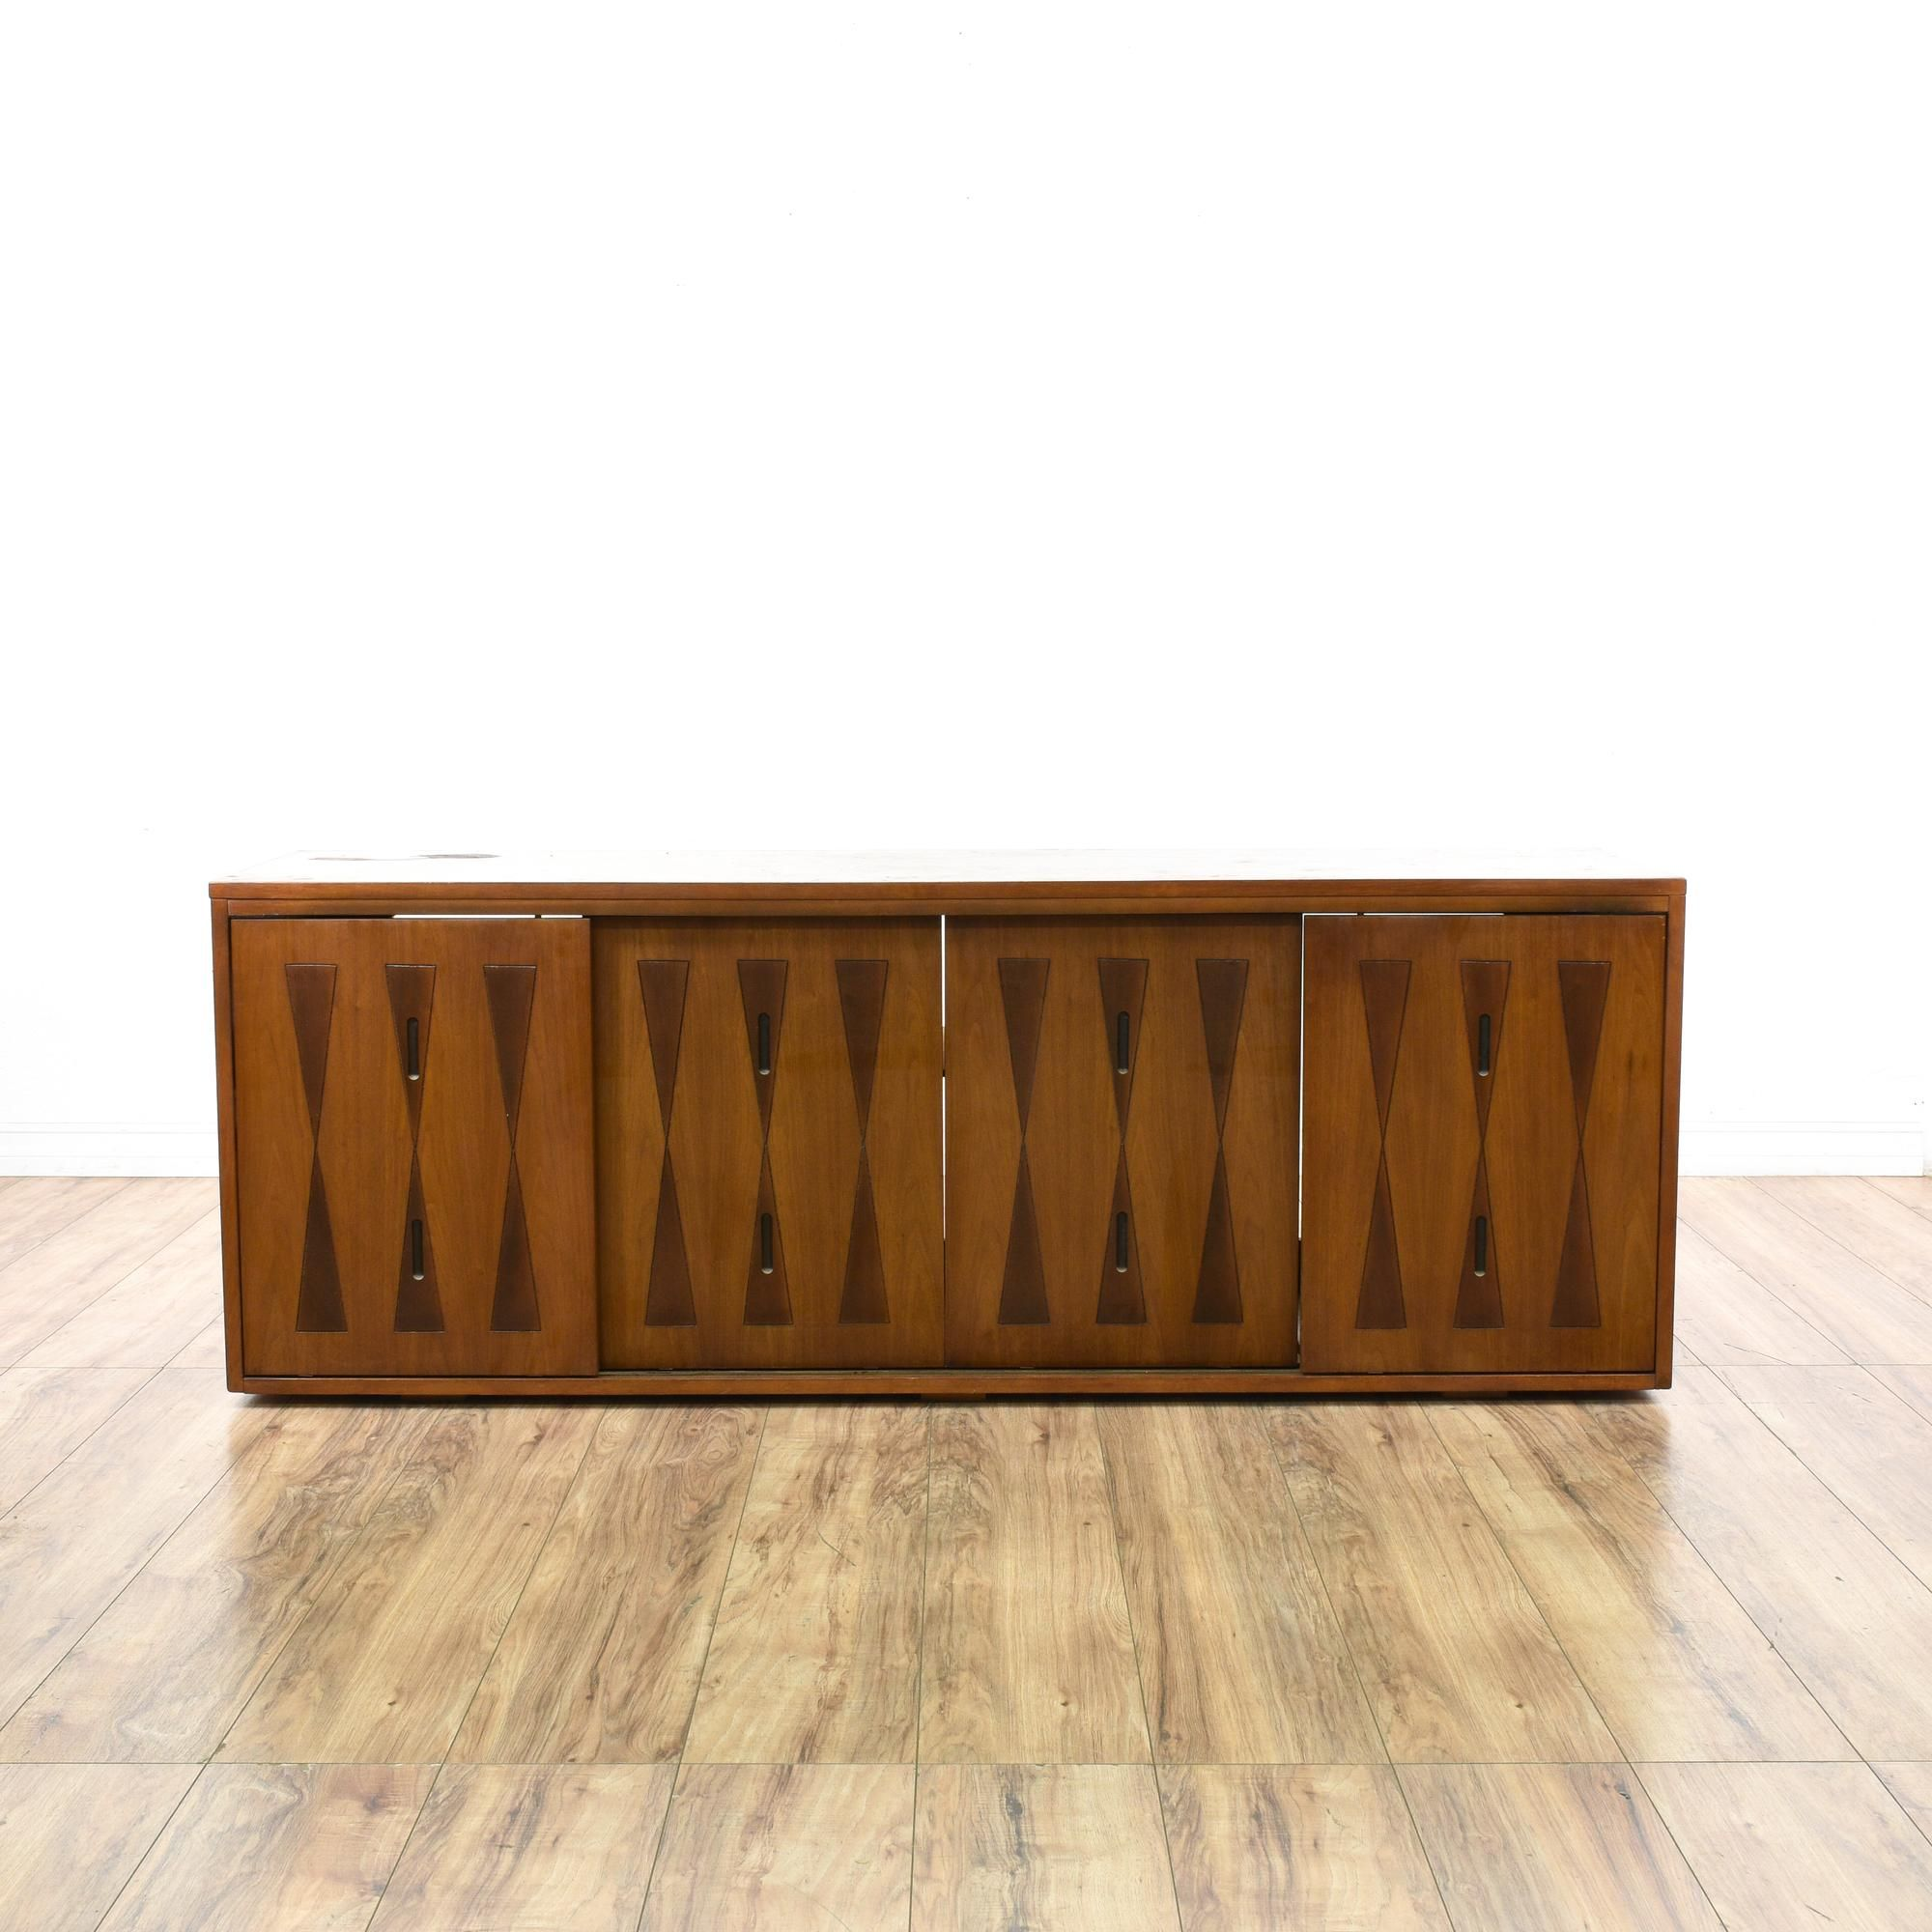 This mid century modern media cabinet is featured in a solid wood